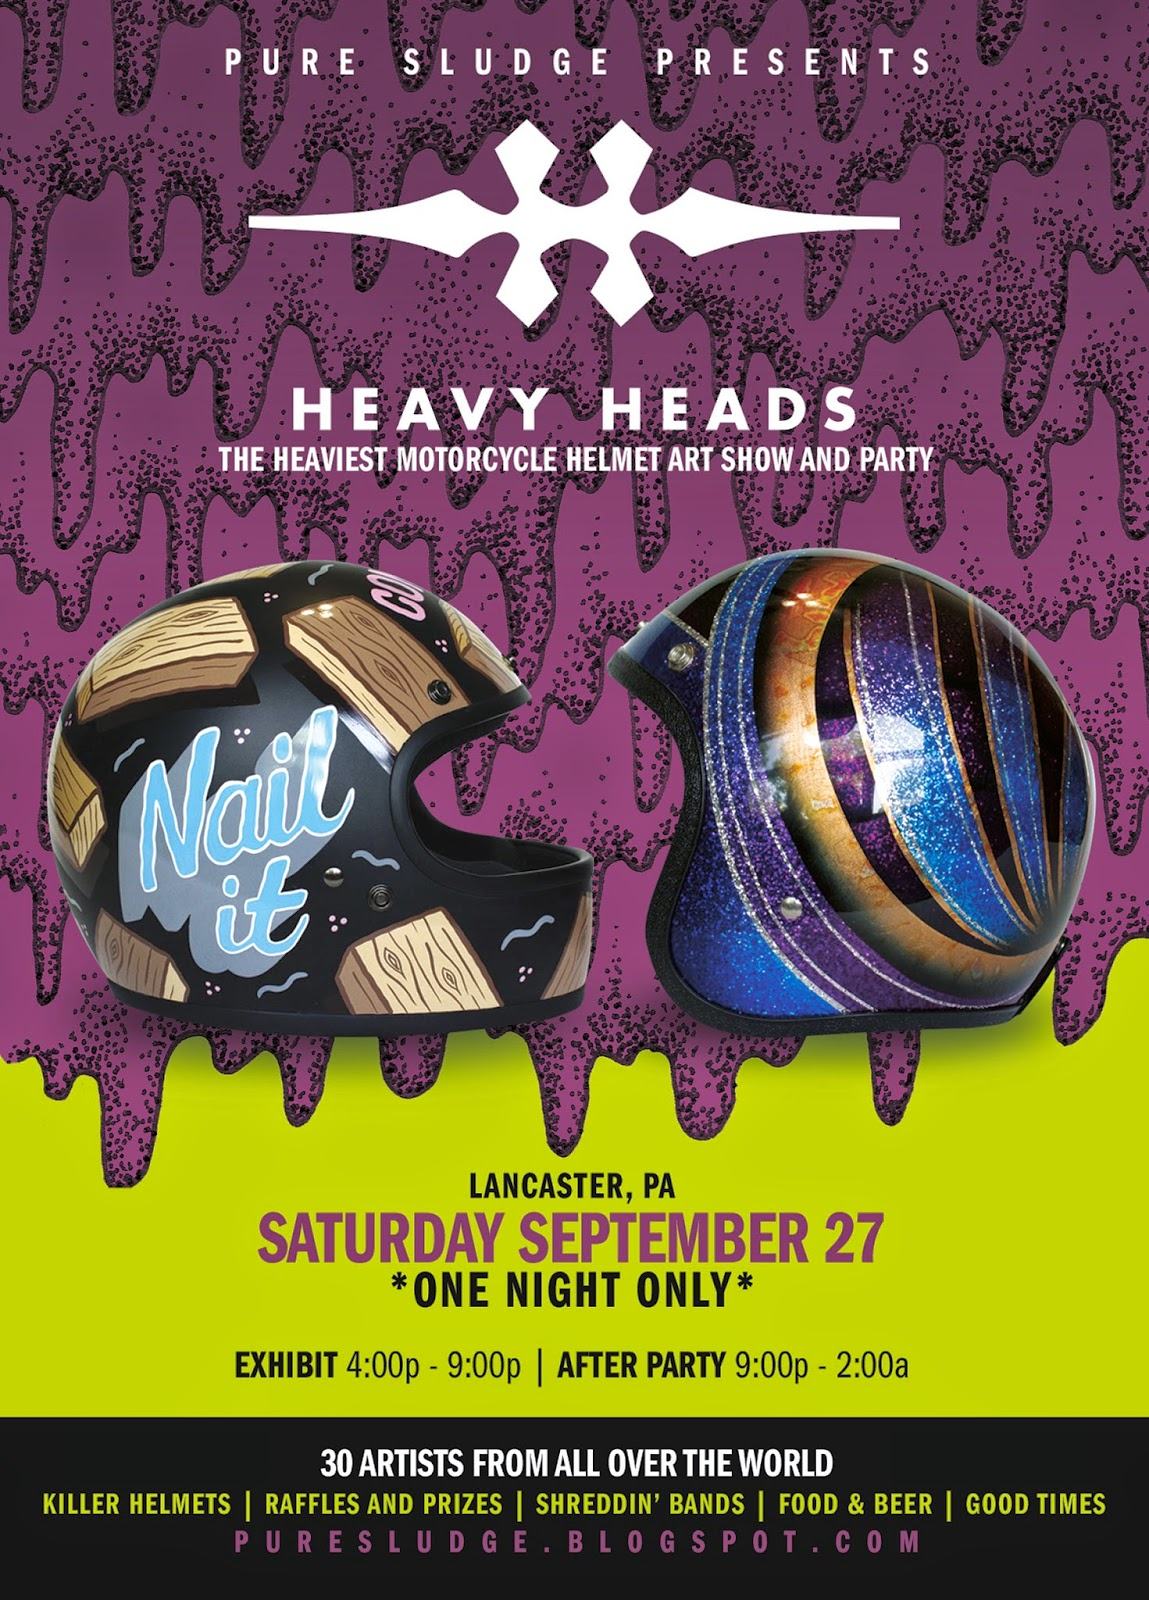 heavy, heads, helmet, show, 2014, motorcycle, harley, davidson, triumph, kawasaki, honda, norton, indian, ornamental, conifer, ryzart, phil guy, pure sludge, lancaster, chin, tank ONE NIGHT ONLY! Don't miss out! September 27, 2014 from 4:00 PM to 2:00 AM Location: 1081 North Plum St. Lancaster, PA 17601  For anyone who hasn't heard, there's a big deal going on in Lancaster two weekends from now. The dudes over at Pure Sludge have teamed up with Biltwell and a cast of international artists to put on the sickest helmet show east of the Mississippi. We've all drooled over the artwork on the covers of Dice and Show Class and now is the chance to meet some of these great artists—And buy their work—And wear it on your dome while you blast around on your motorcycle!  $5 entry to the art show (FREE if you ride yer motorbike!) gets you a raffle ticket and wrist band to drink. We'll have free beer inside while supplies last. So many raffle prizes and amazing helmets to look at.  After party (21+) is right across the street at American Bar & Grill from 9:00p - 2:00a.  If anyone wants to ride out with me: Lets meet at Atlantis Lost Bar on Frankford Avenue at 1:30pm Saturday the 27th. Come gassed with a bag of grass. I'm camping out for the night.  featured artists:  Ornamental Conifer Ornamental Conifer Ornamental Conifer Ornamental Conifer CA_TONUP ADI GILBERT aka Uncle Twisty Uncle Twisty Phil Guy Phil Guy Phil Guy Phil Guy Maxwell Paternoster Maxwell Paternoster Maxwell Paternoster Maxwell Paternoster